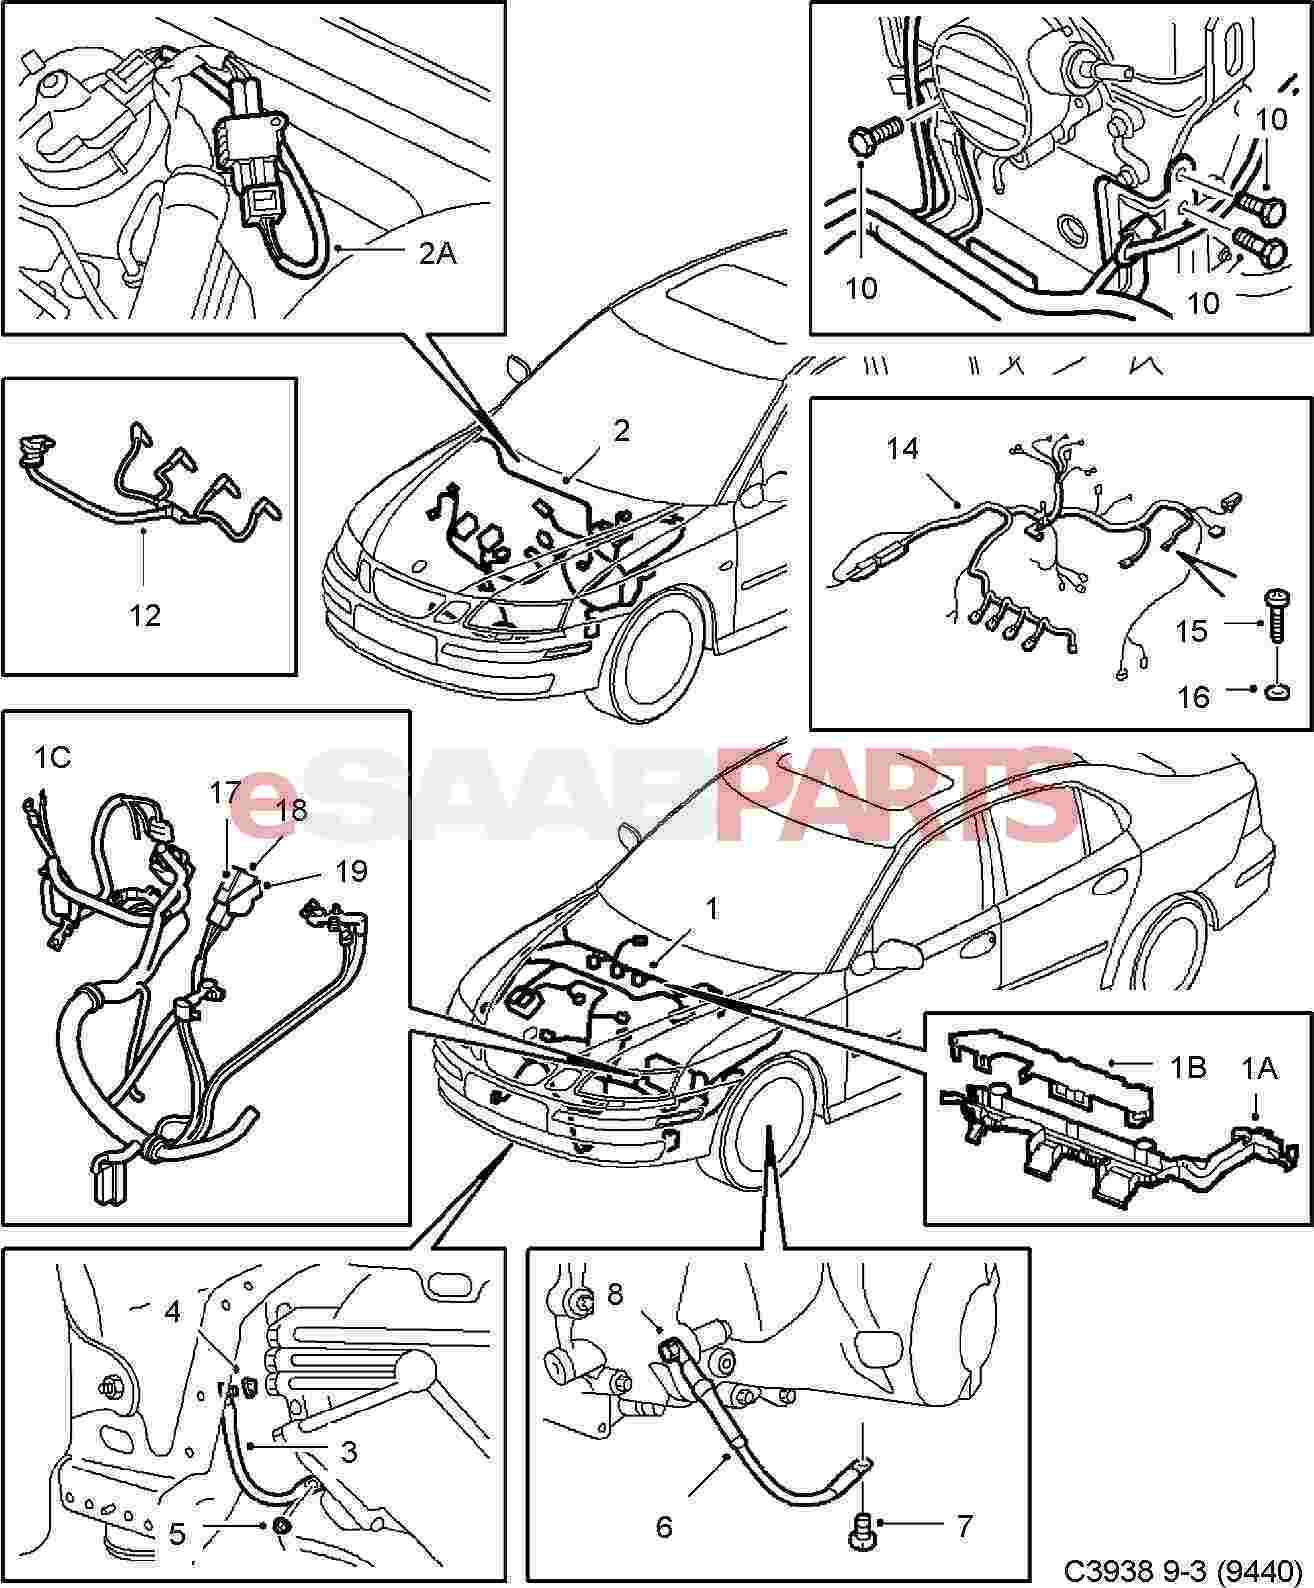 saab 9 5 engine wiring diagram   30 wiring diagram images